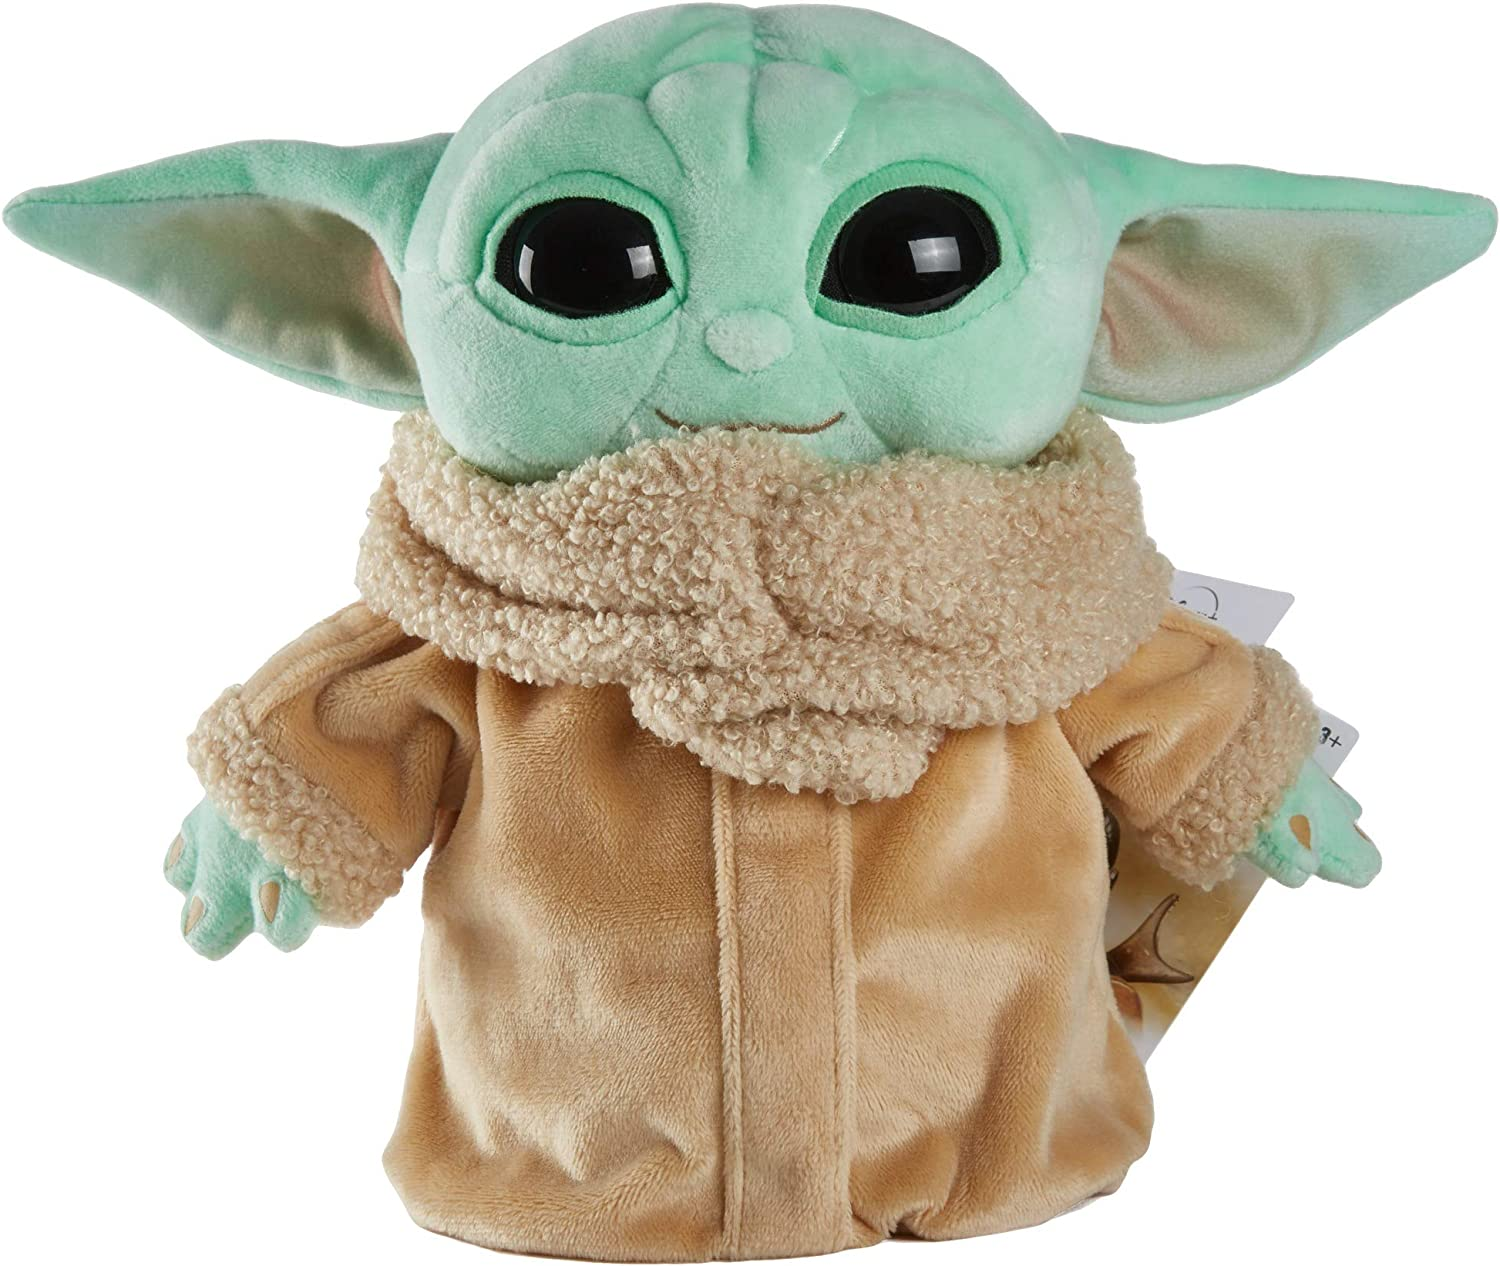 Amazon Com Mattel Star Wars The Child Plush Toy 8 In Small Yoda Baby Figure From The Mandalorian Collectible Stuffed Character For Movie Fans Of All Ages 3 And Older Green Model Number Gwh23